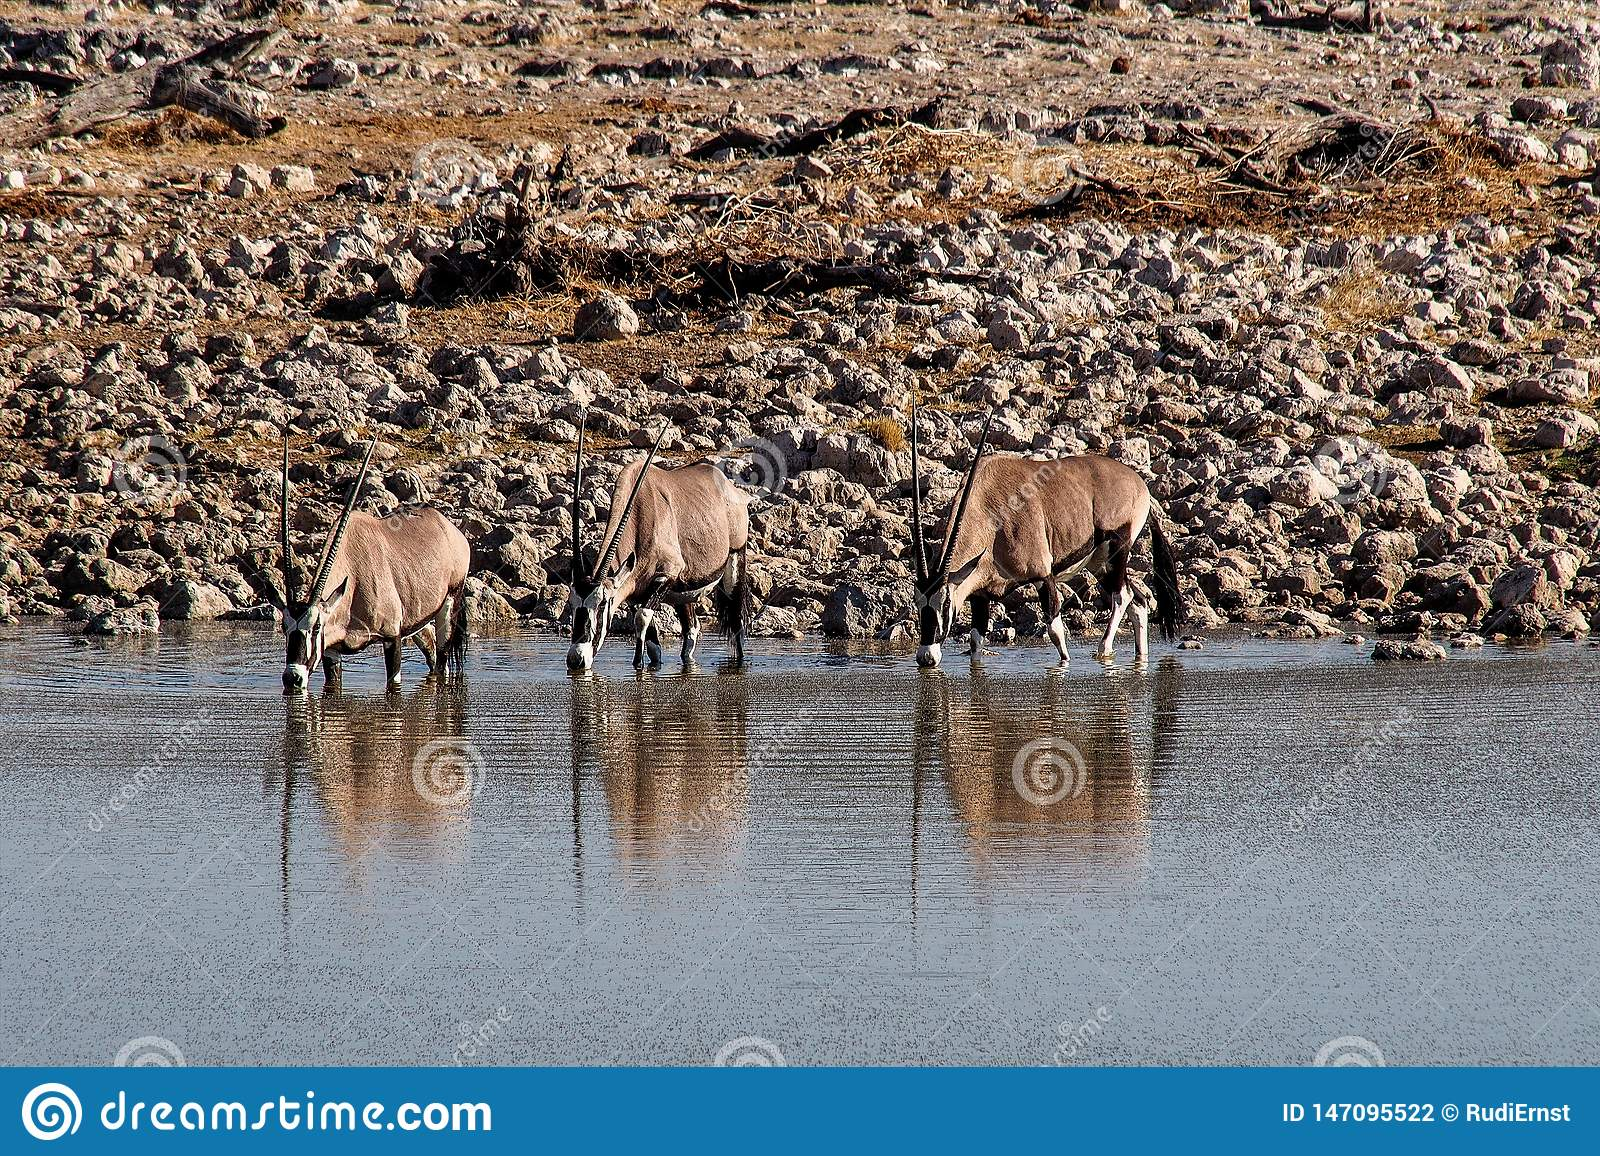 Oryx antelopes drinking at a waterhole in Etosha Park in Namibia